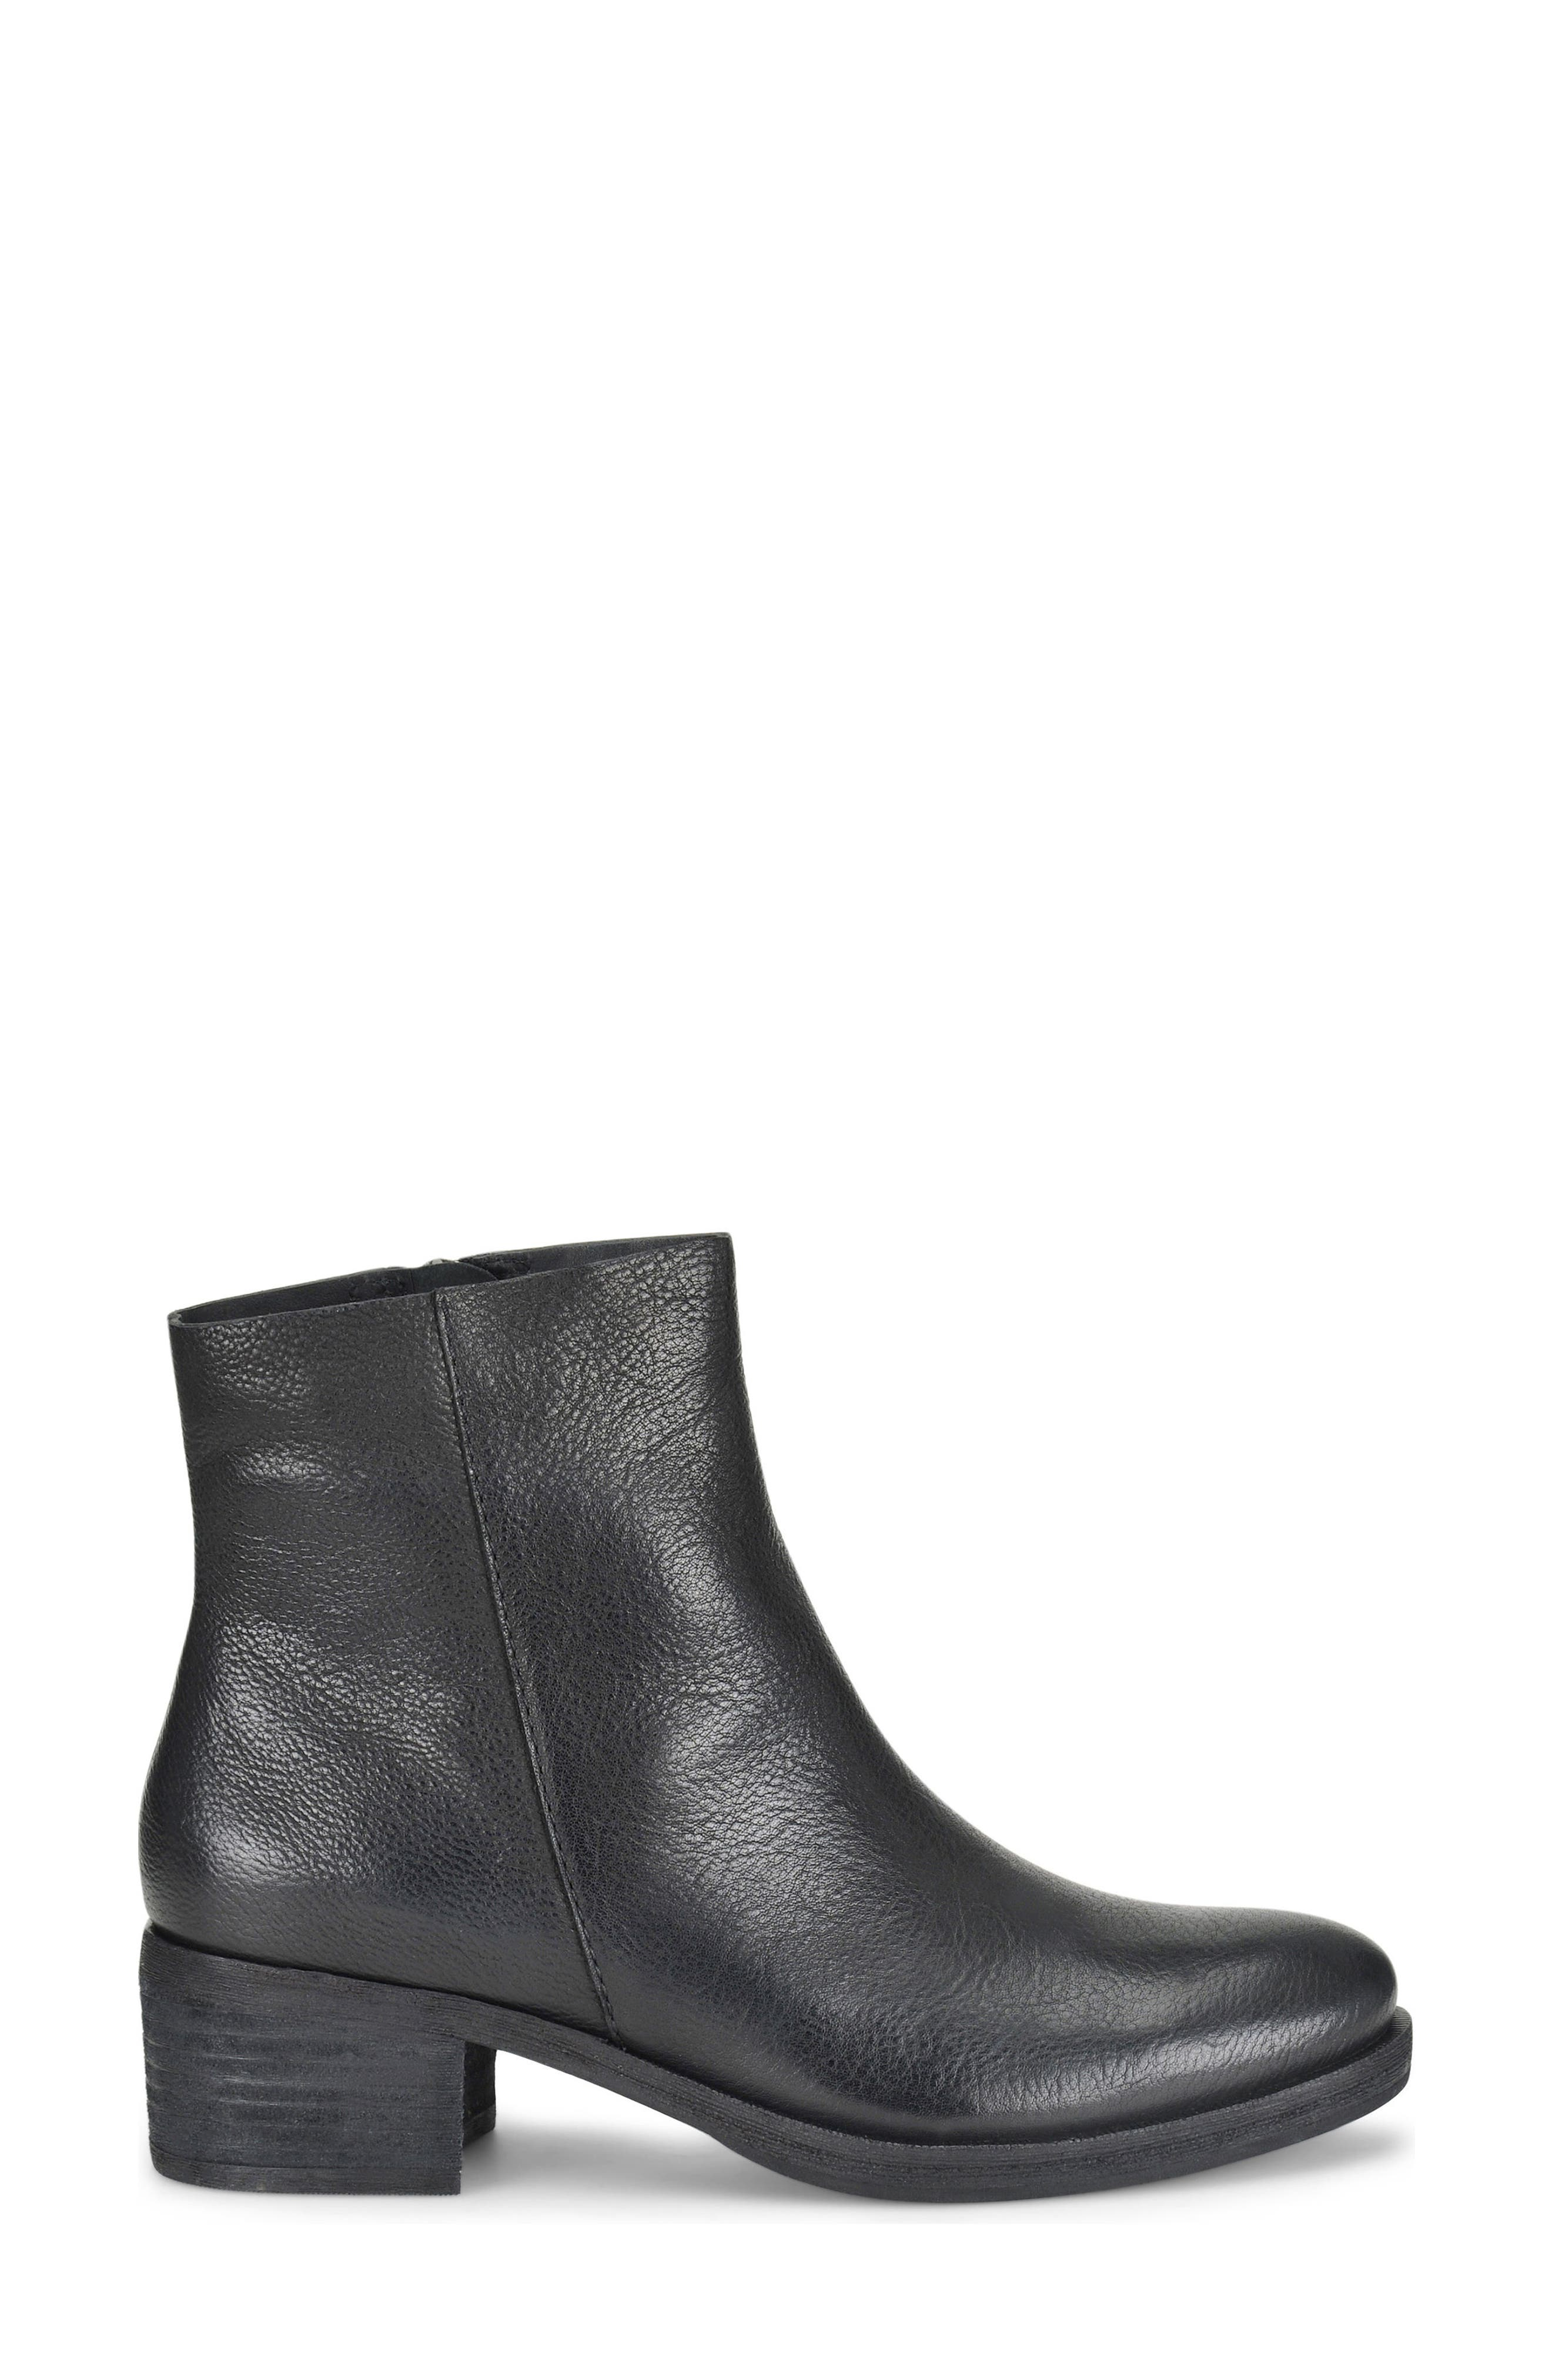 Mayten Bootie,                             Alternate thumbnail 3, color,                             Black Leather